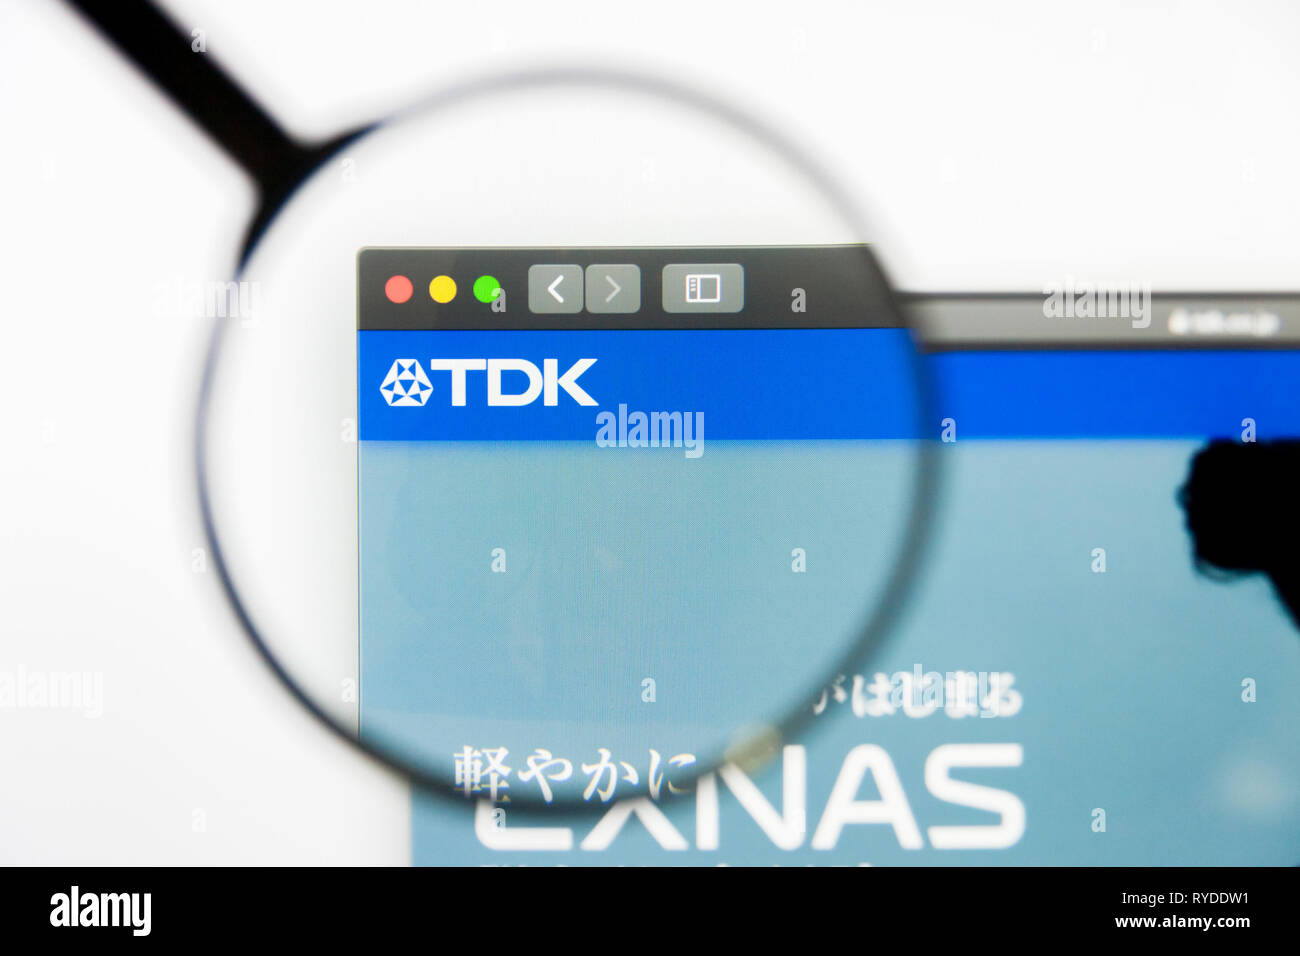 Los Angeles, California, USA - 12 March 2019: Illustrative Editorial, TDK website homepage. TDK logo visible on screen - Stock Image